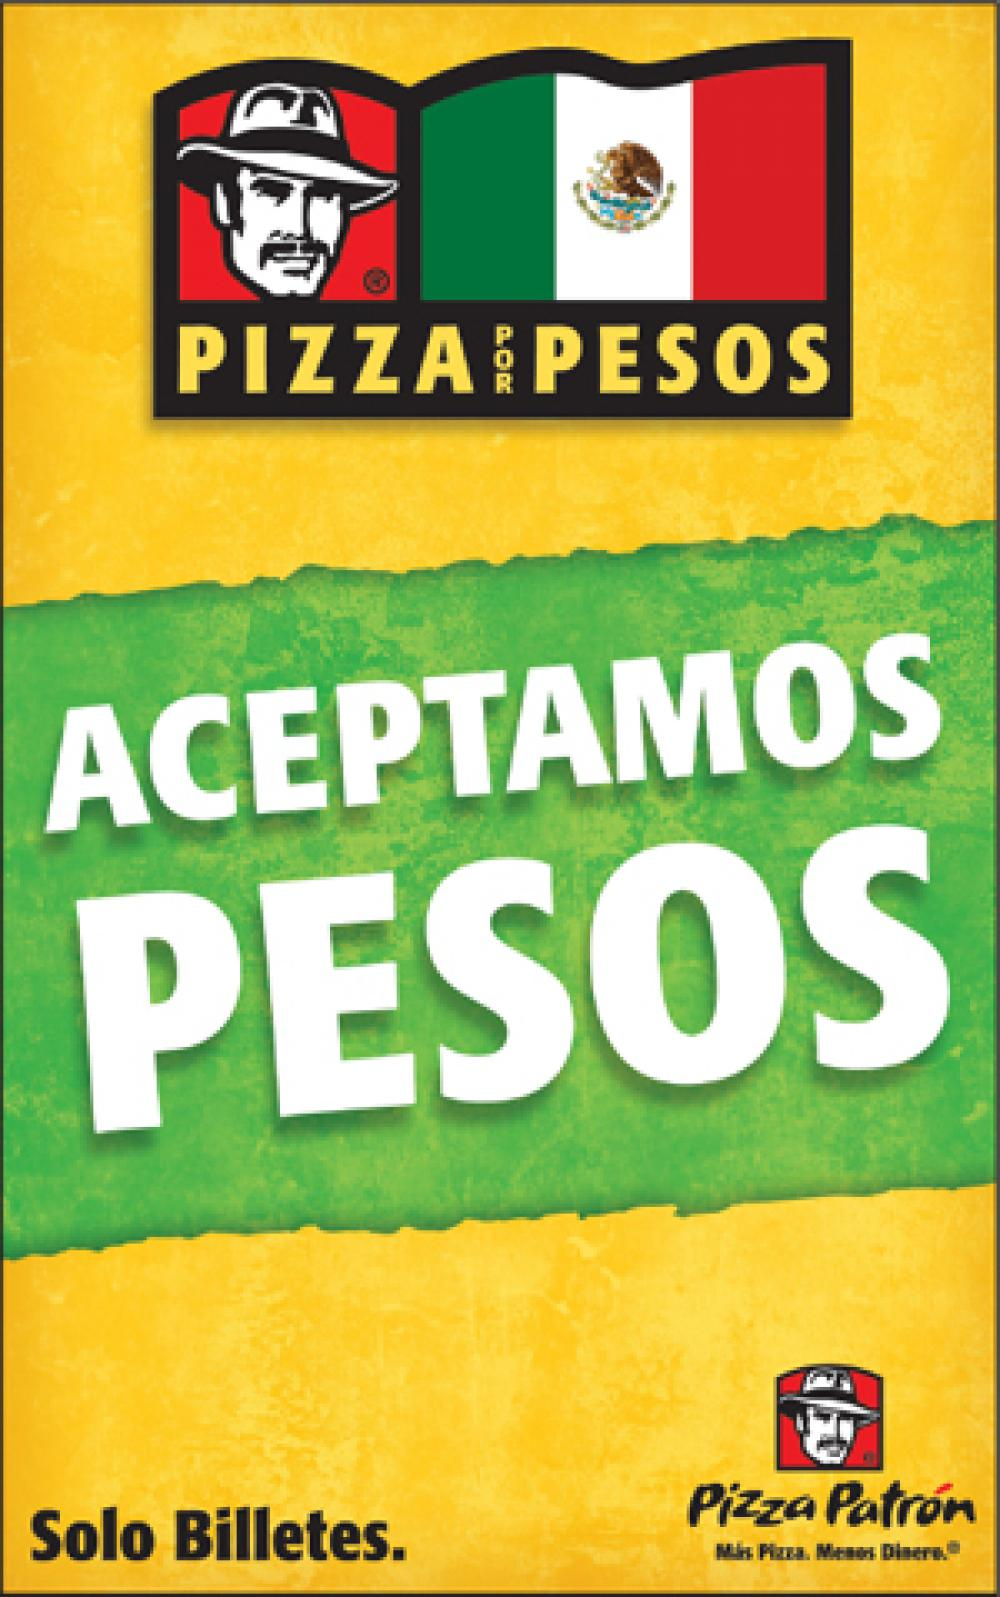 Pizza chain's peso promotion fans flames of immigration debate